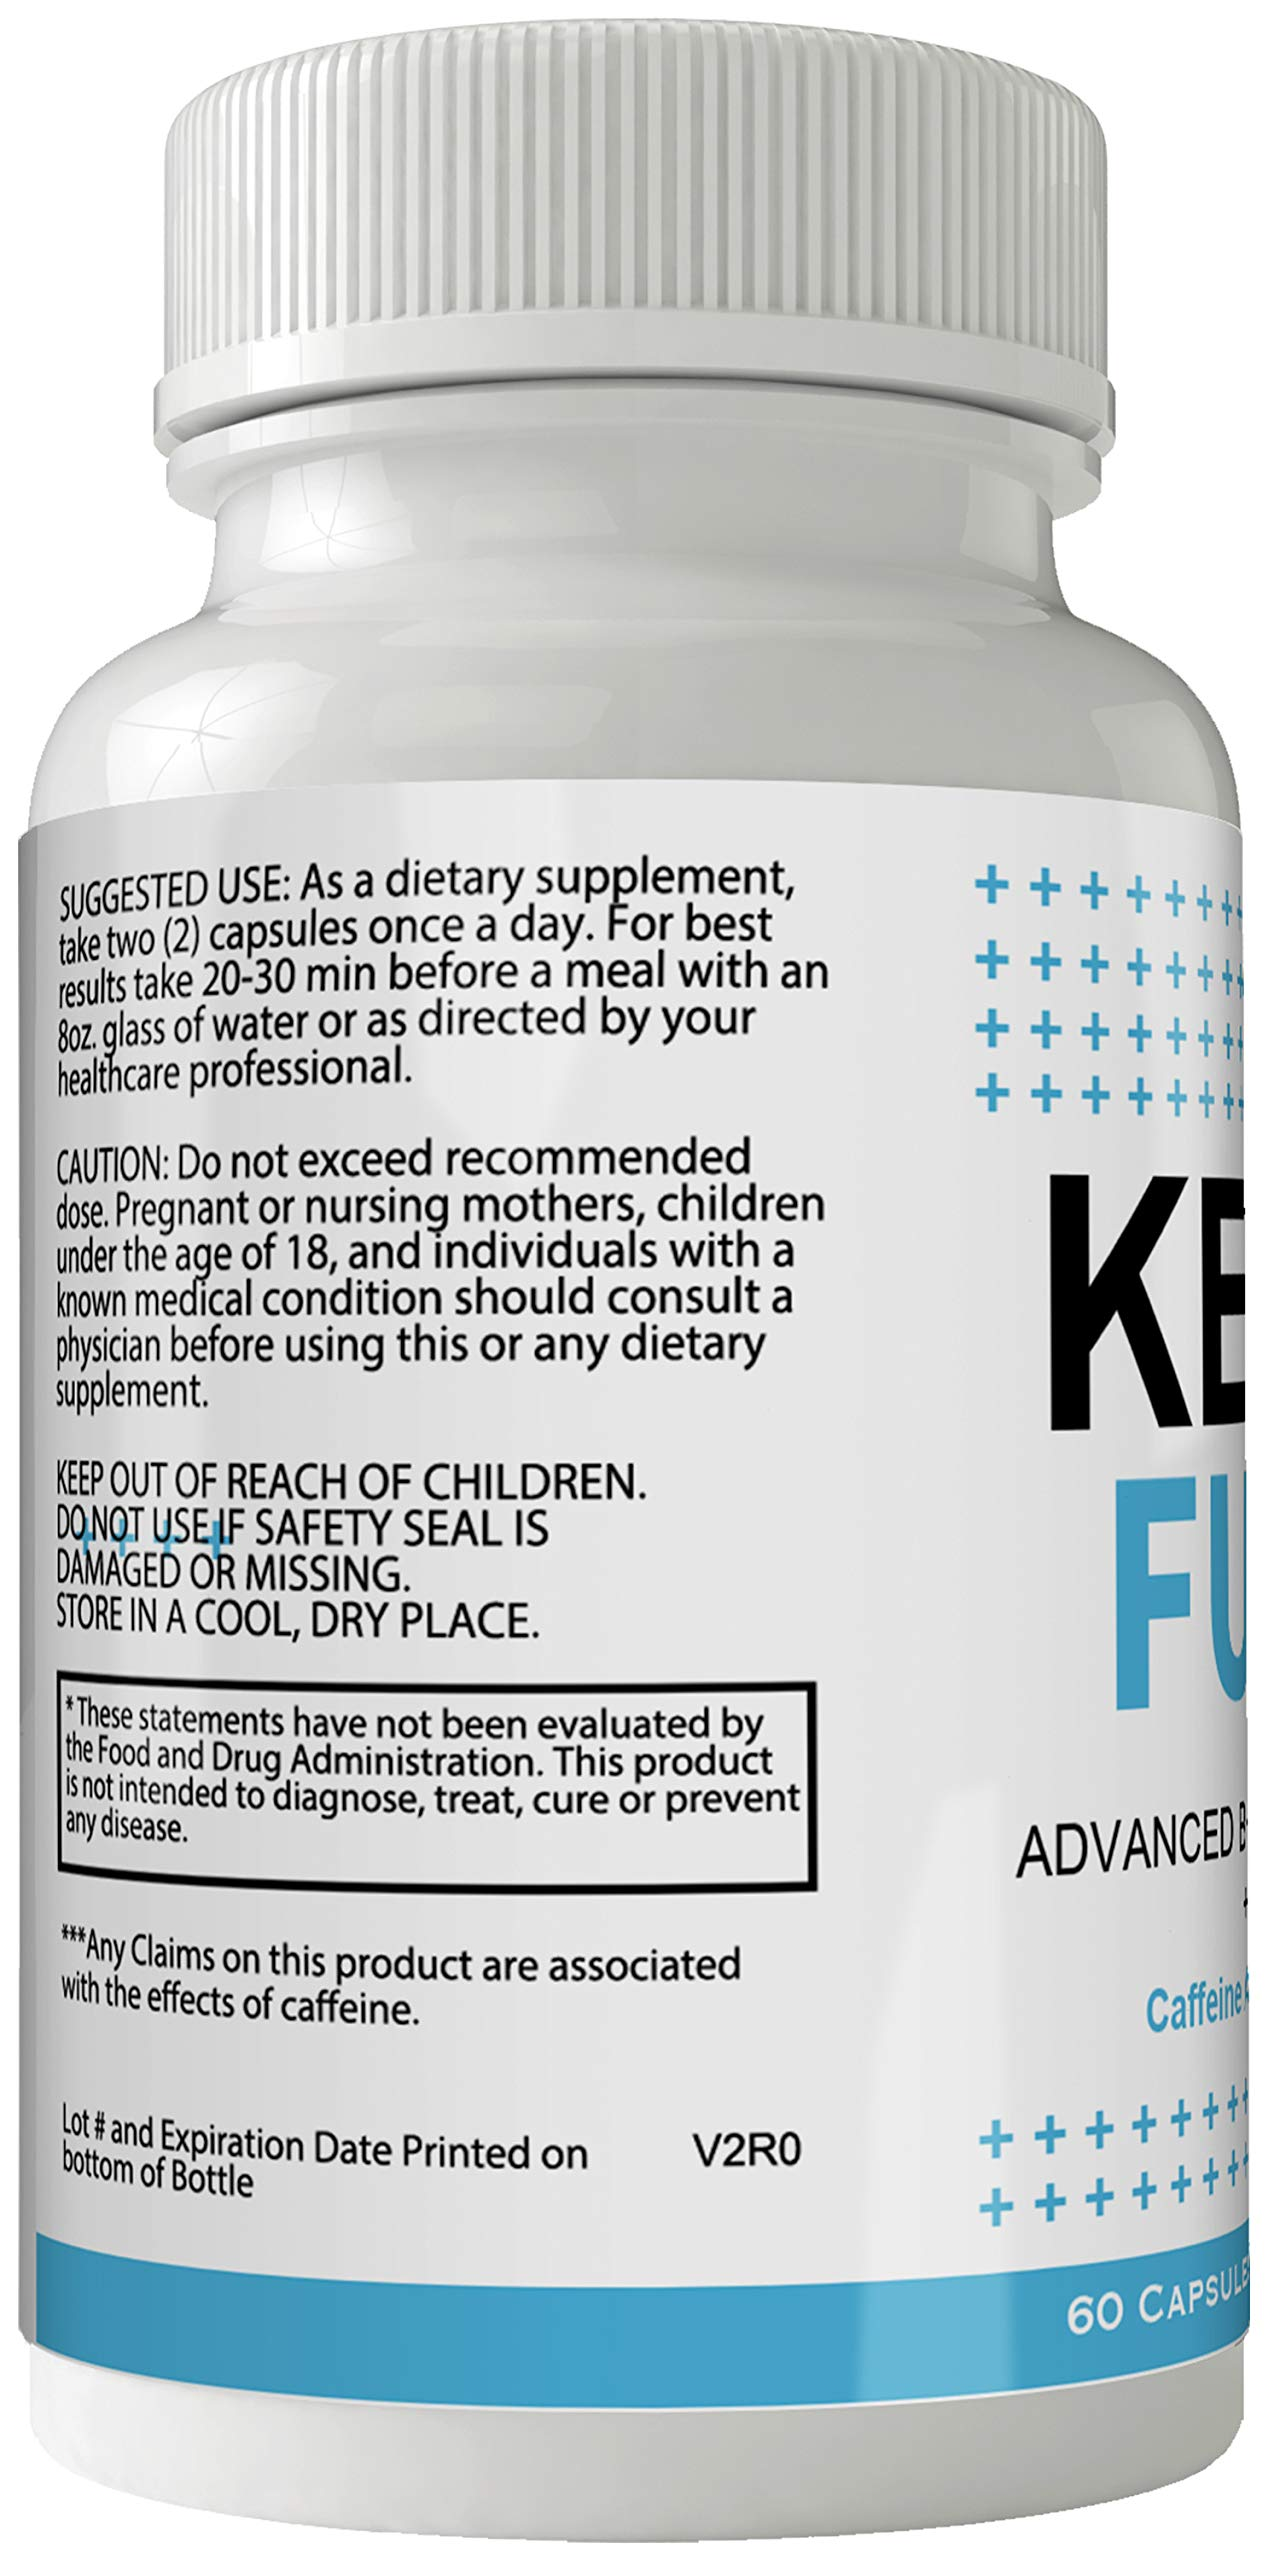 Keto Fuel Weight Loss Pills Advance Weight Loss Supplement Appetite Suppressant Natural Ketogenic 800 mg Formula with BHB Salts Ketone Diet Capsules to Boost Metabolism, Energy and Focus by nutra4health LLC (Image #3)